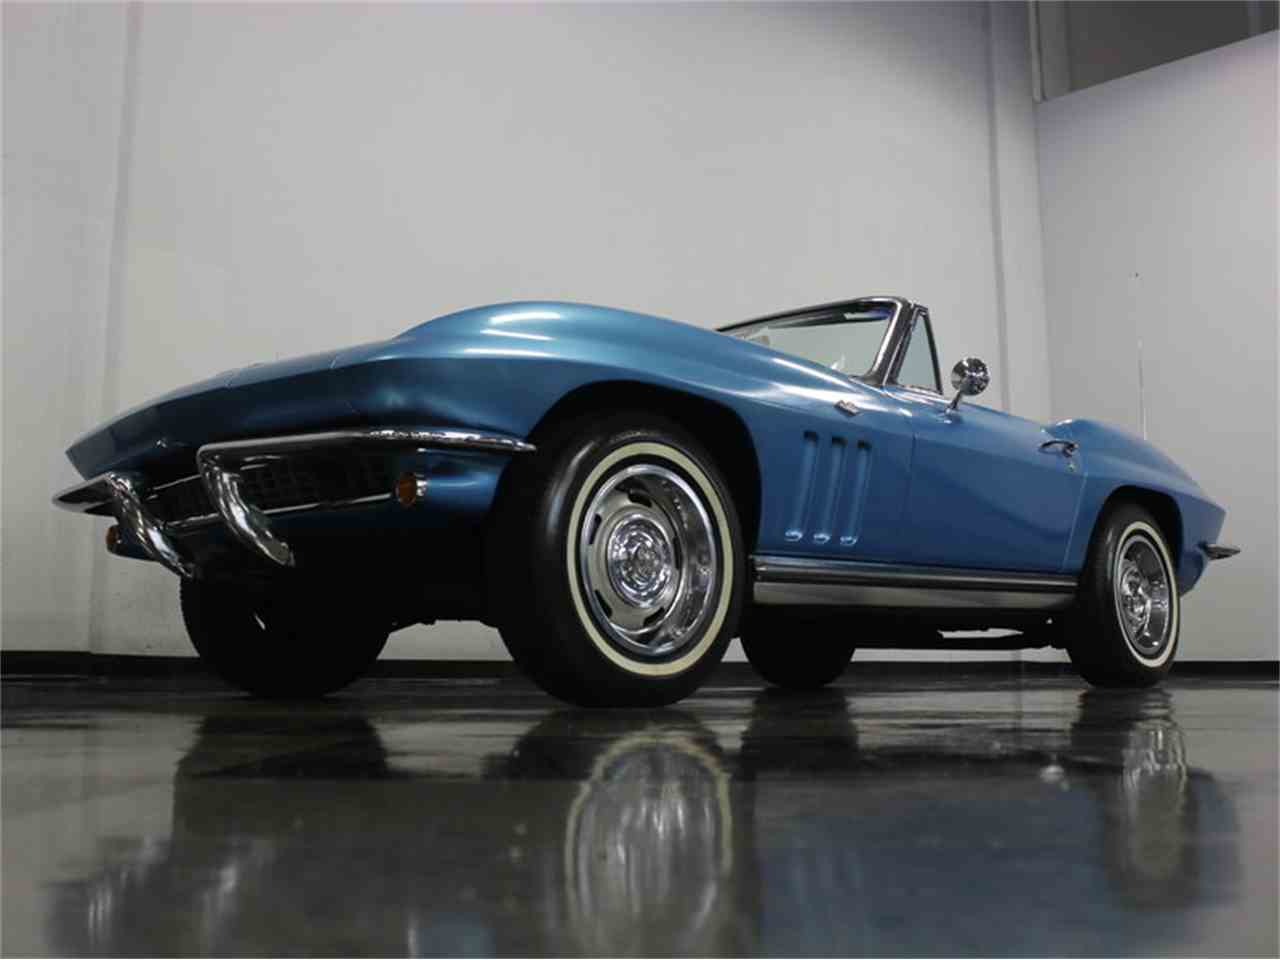 Large Picture of 1965 Chevrolet Corvette located in Texas Offered by Streetside Classics - Dallas / Fort Worth - JRNP